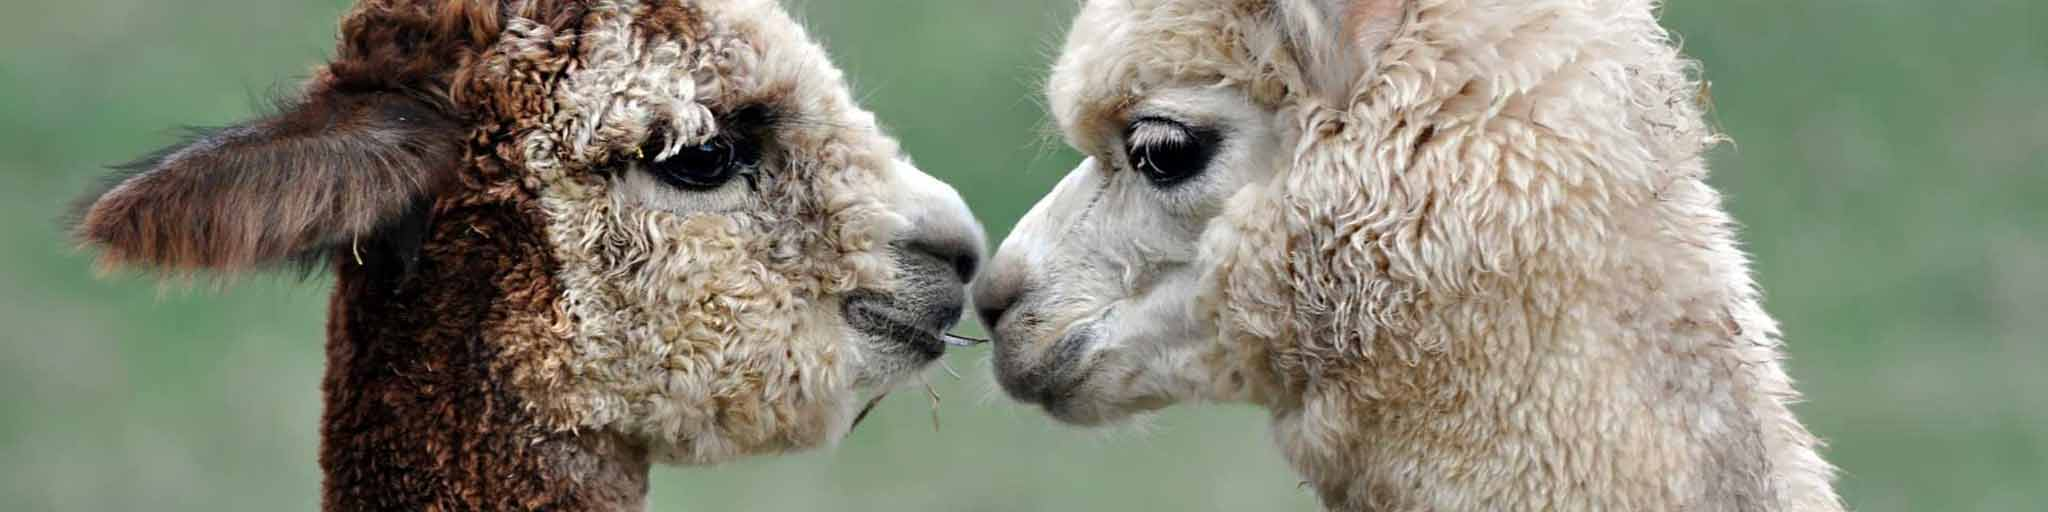 Alpacas nuzzling each other